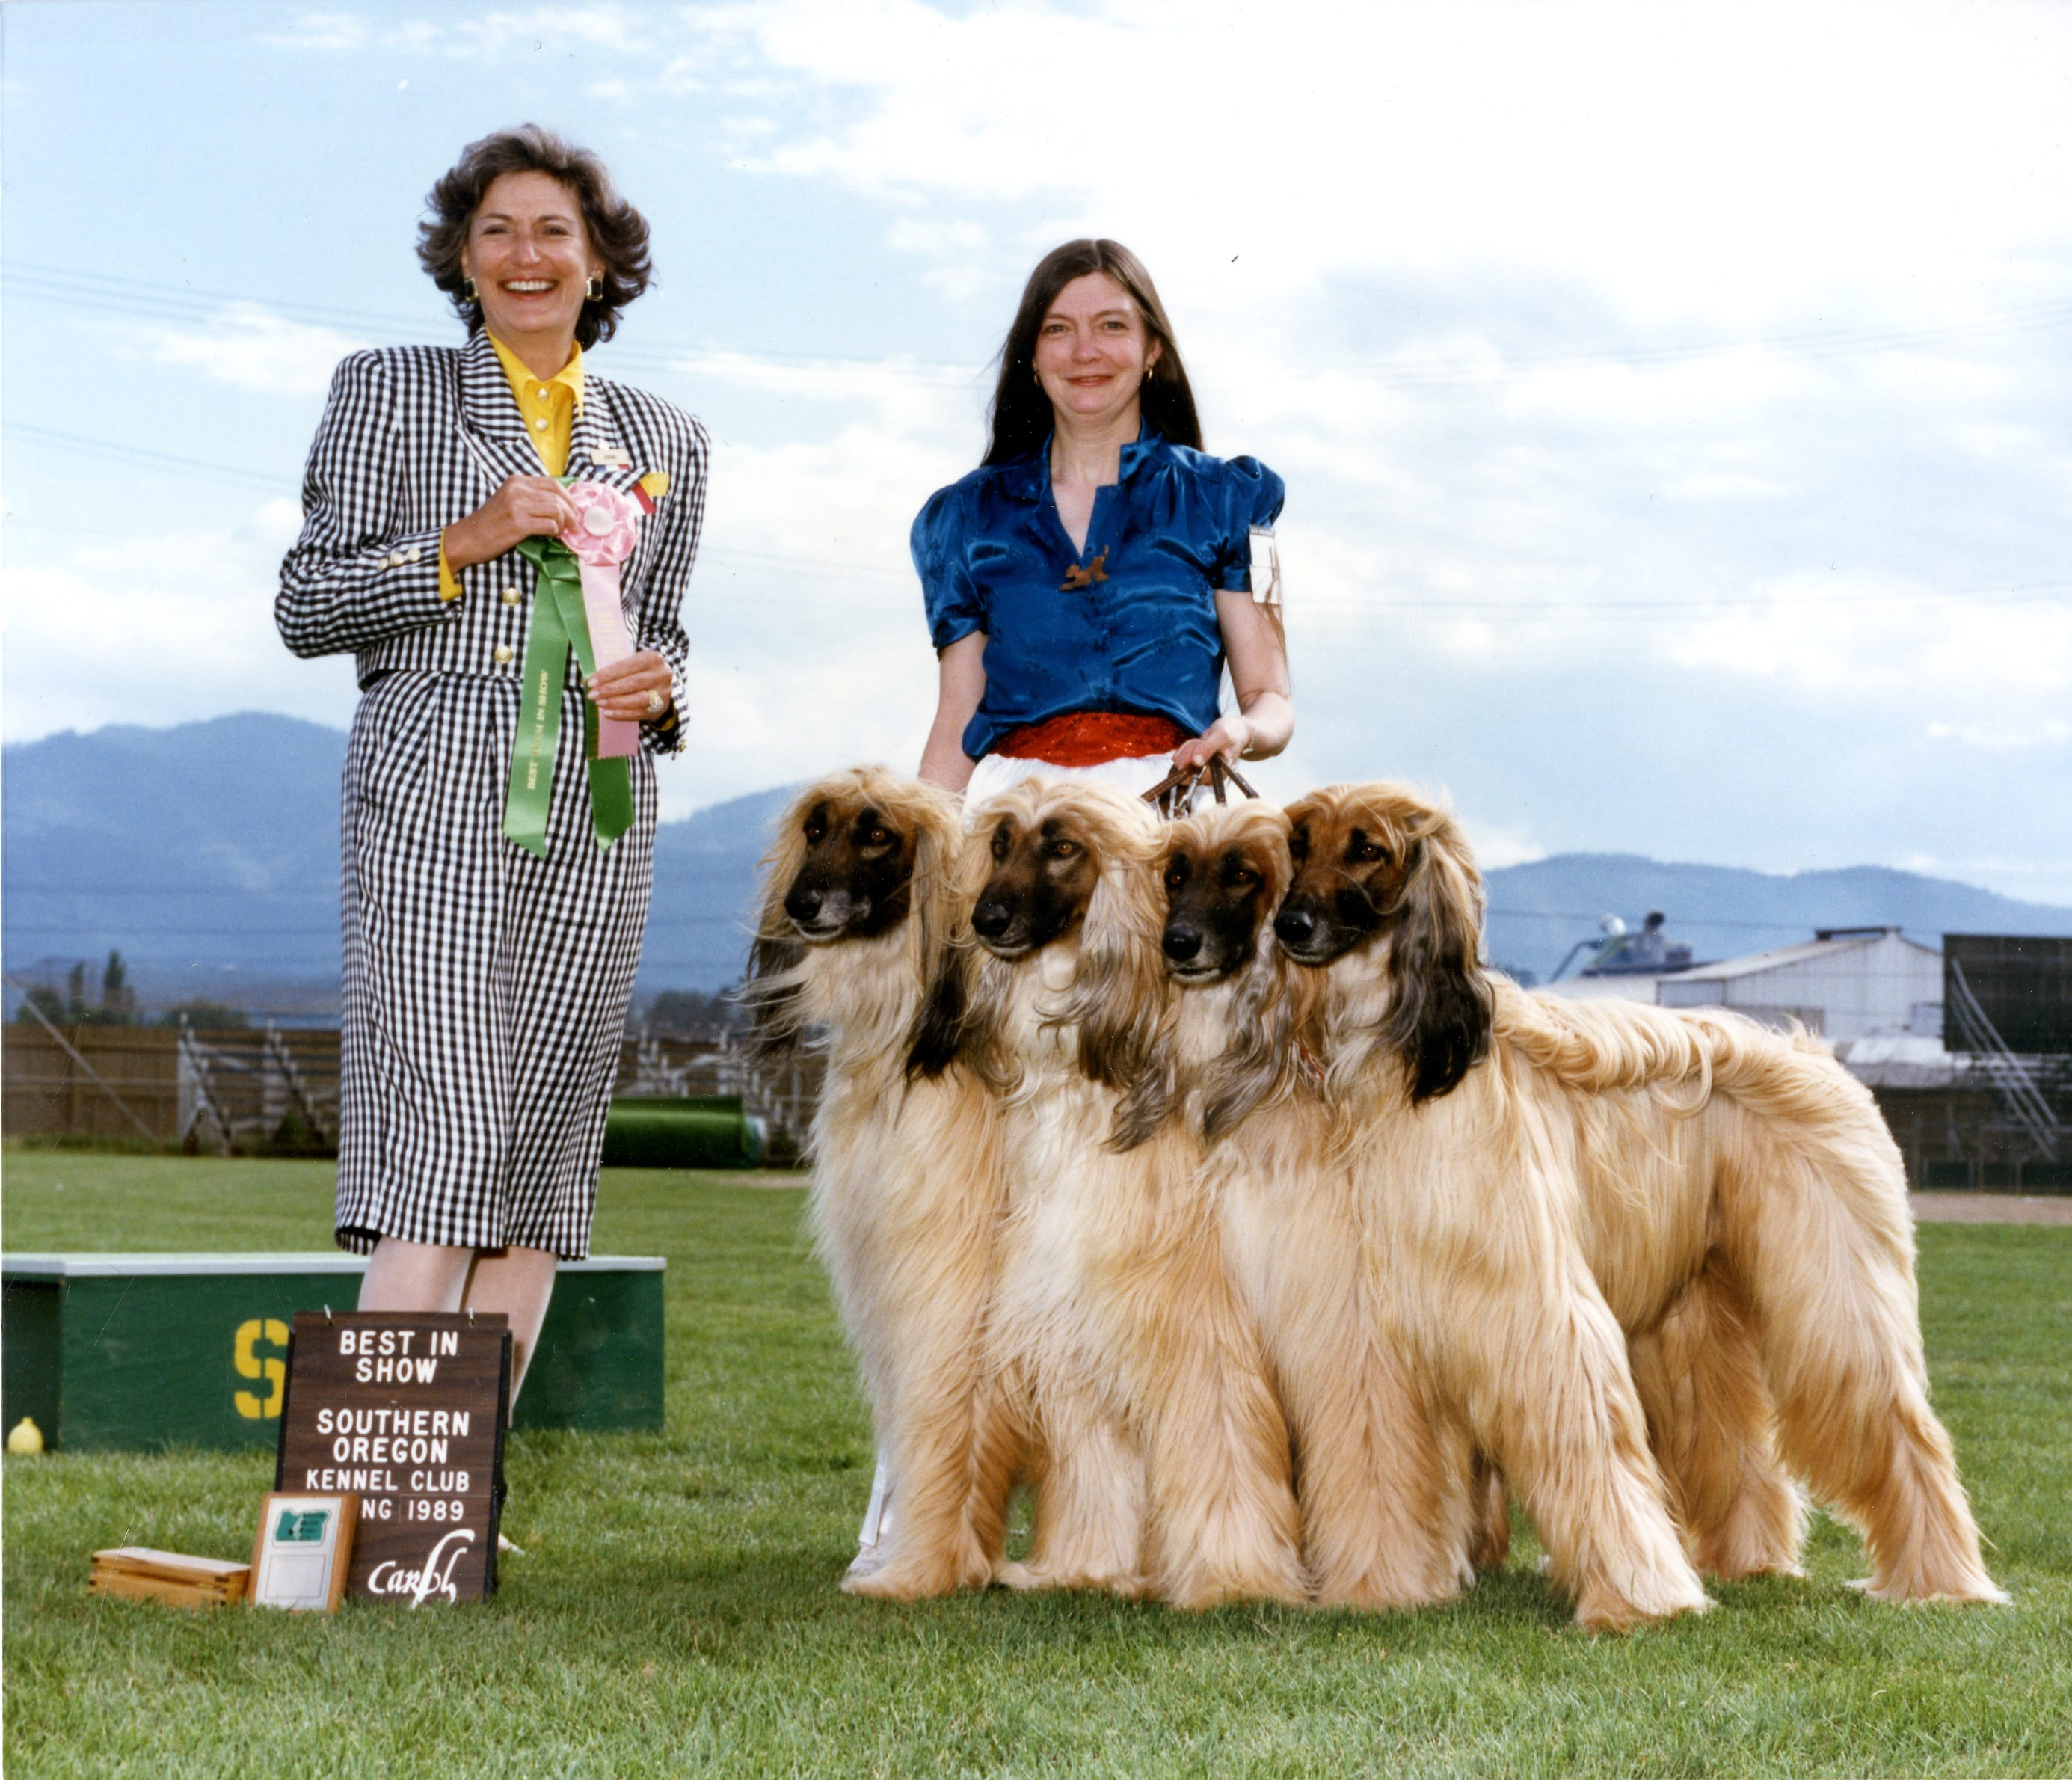 Sheila Grant and her four Afghan hounds are awarded Best in Show at the Southern Oregon Kennel Club dog show in 1989